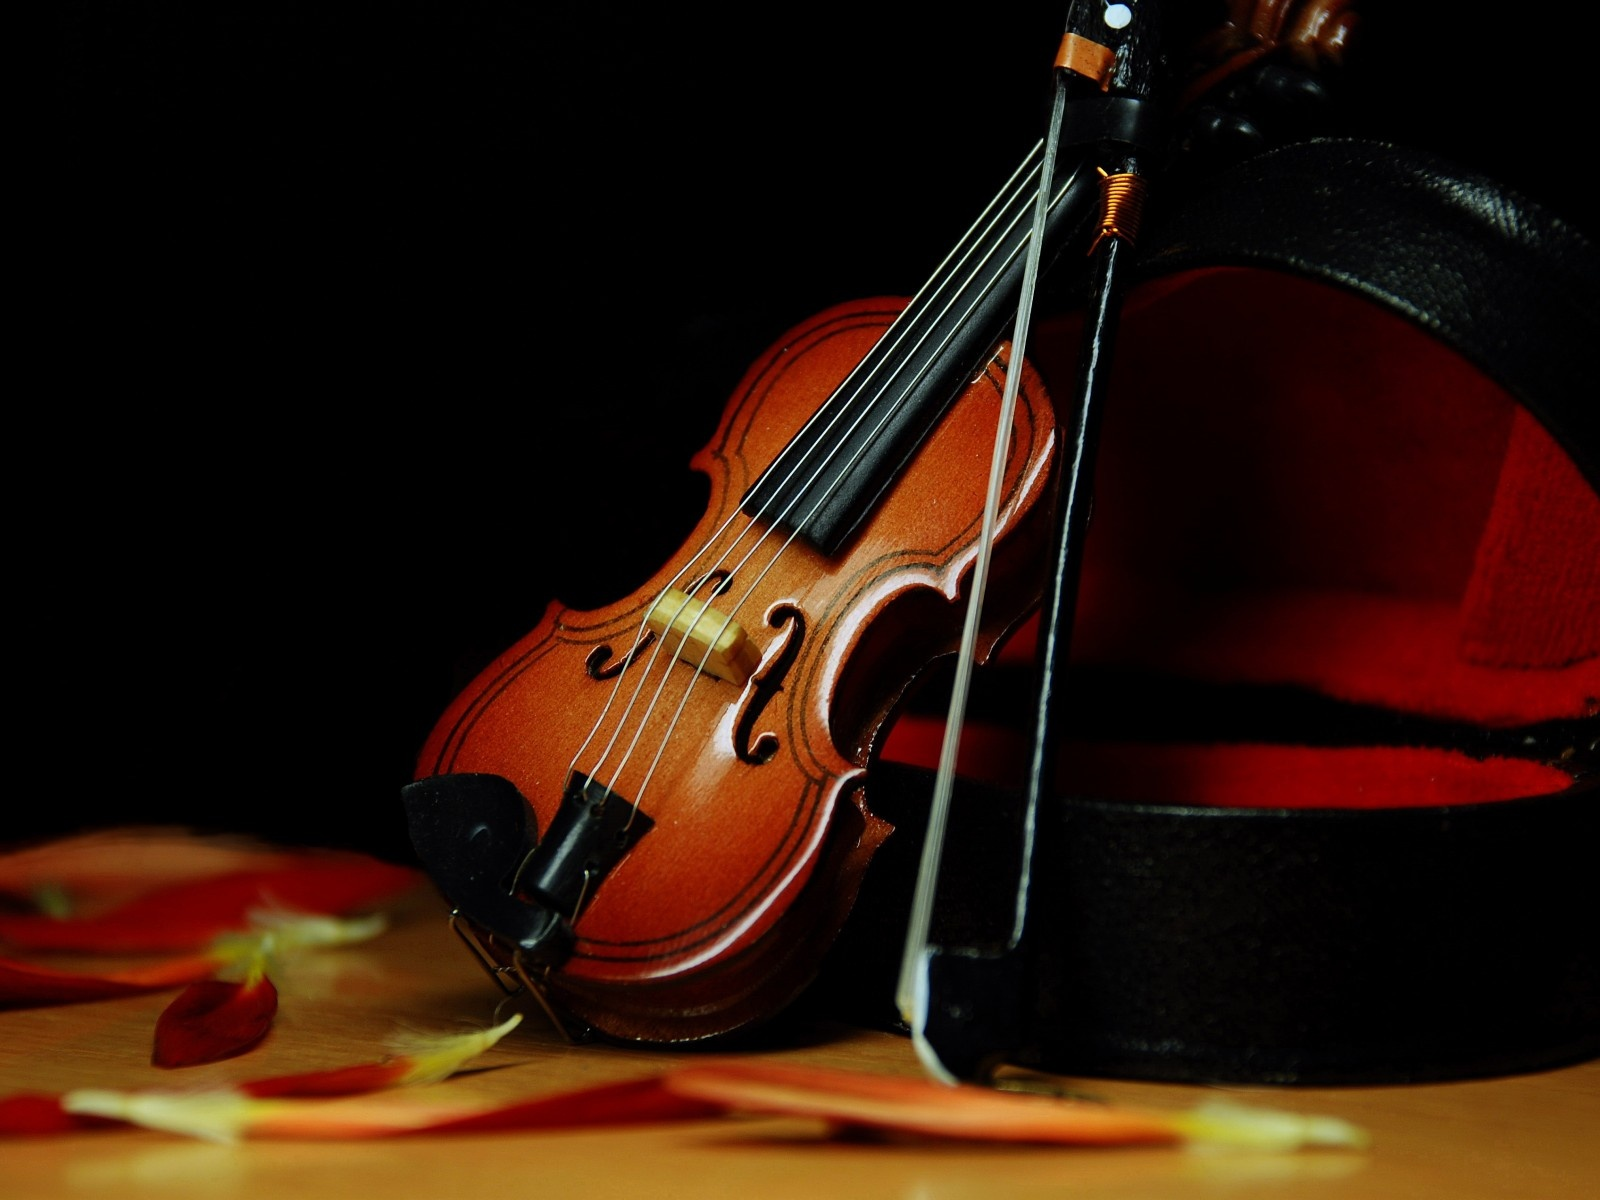 Violin HDQ Images